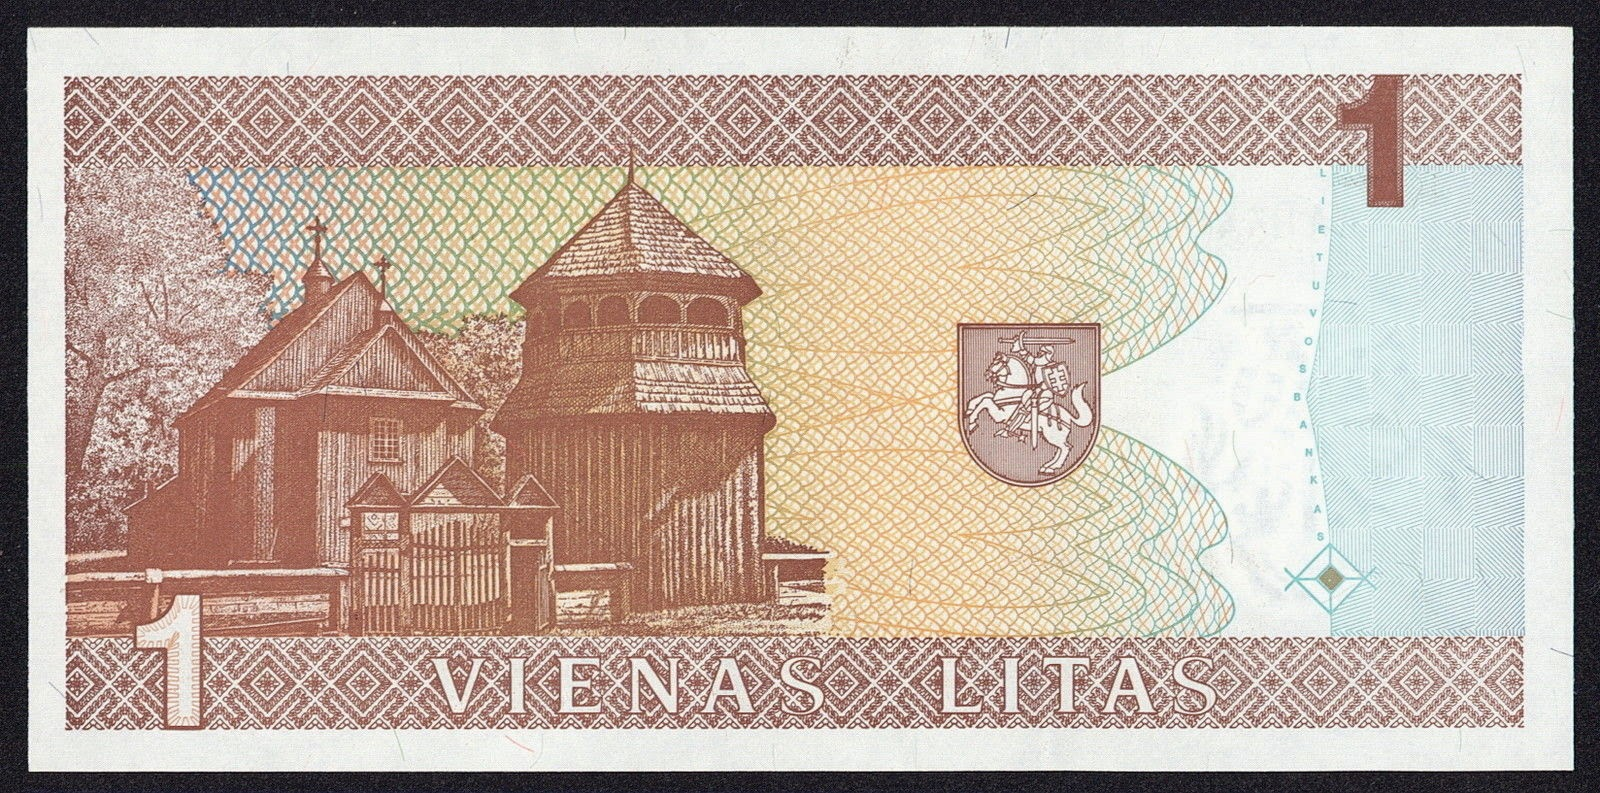 Banknotes of Lithuania 1 Litas banknote 1994 wooden church